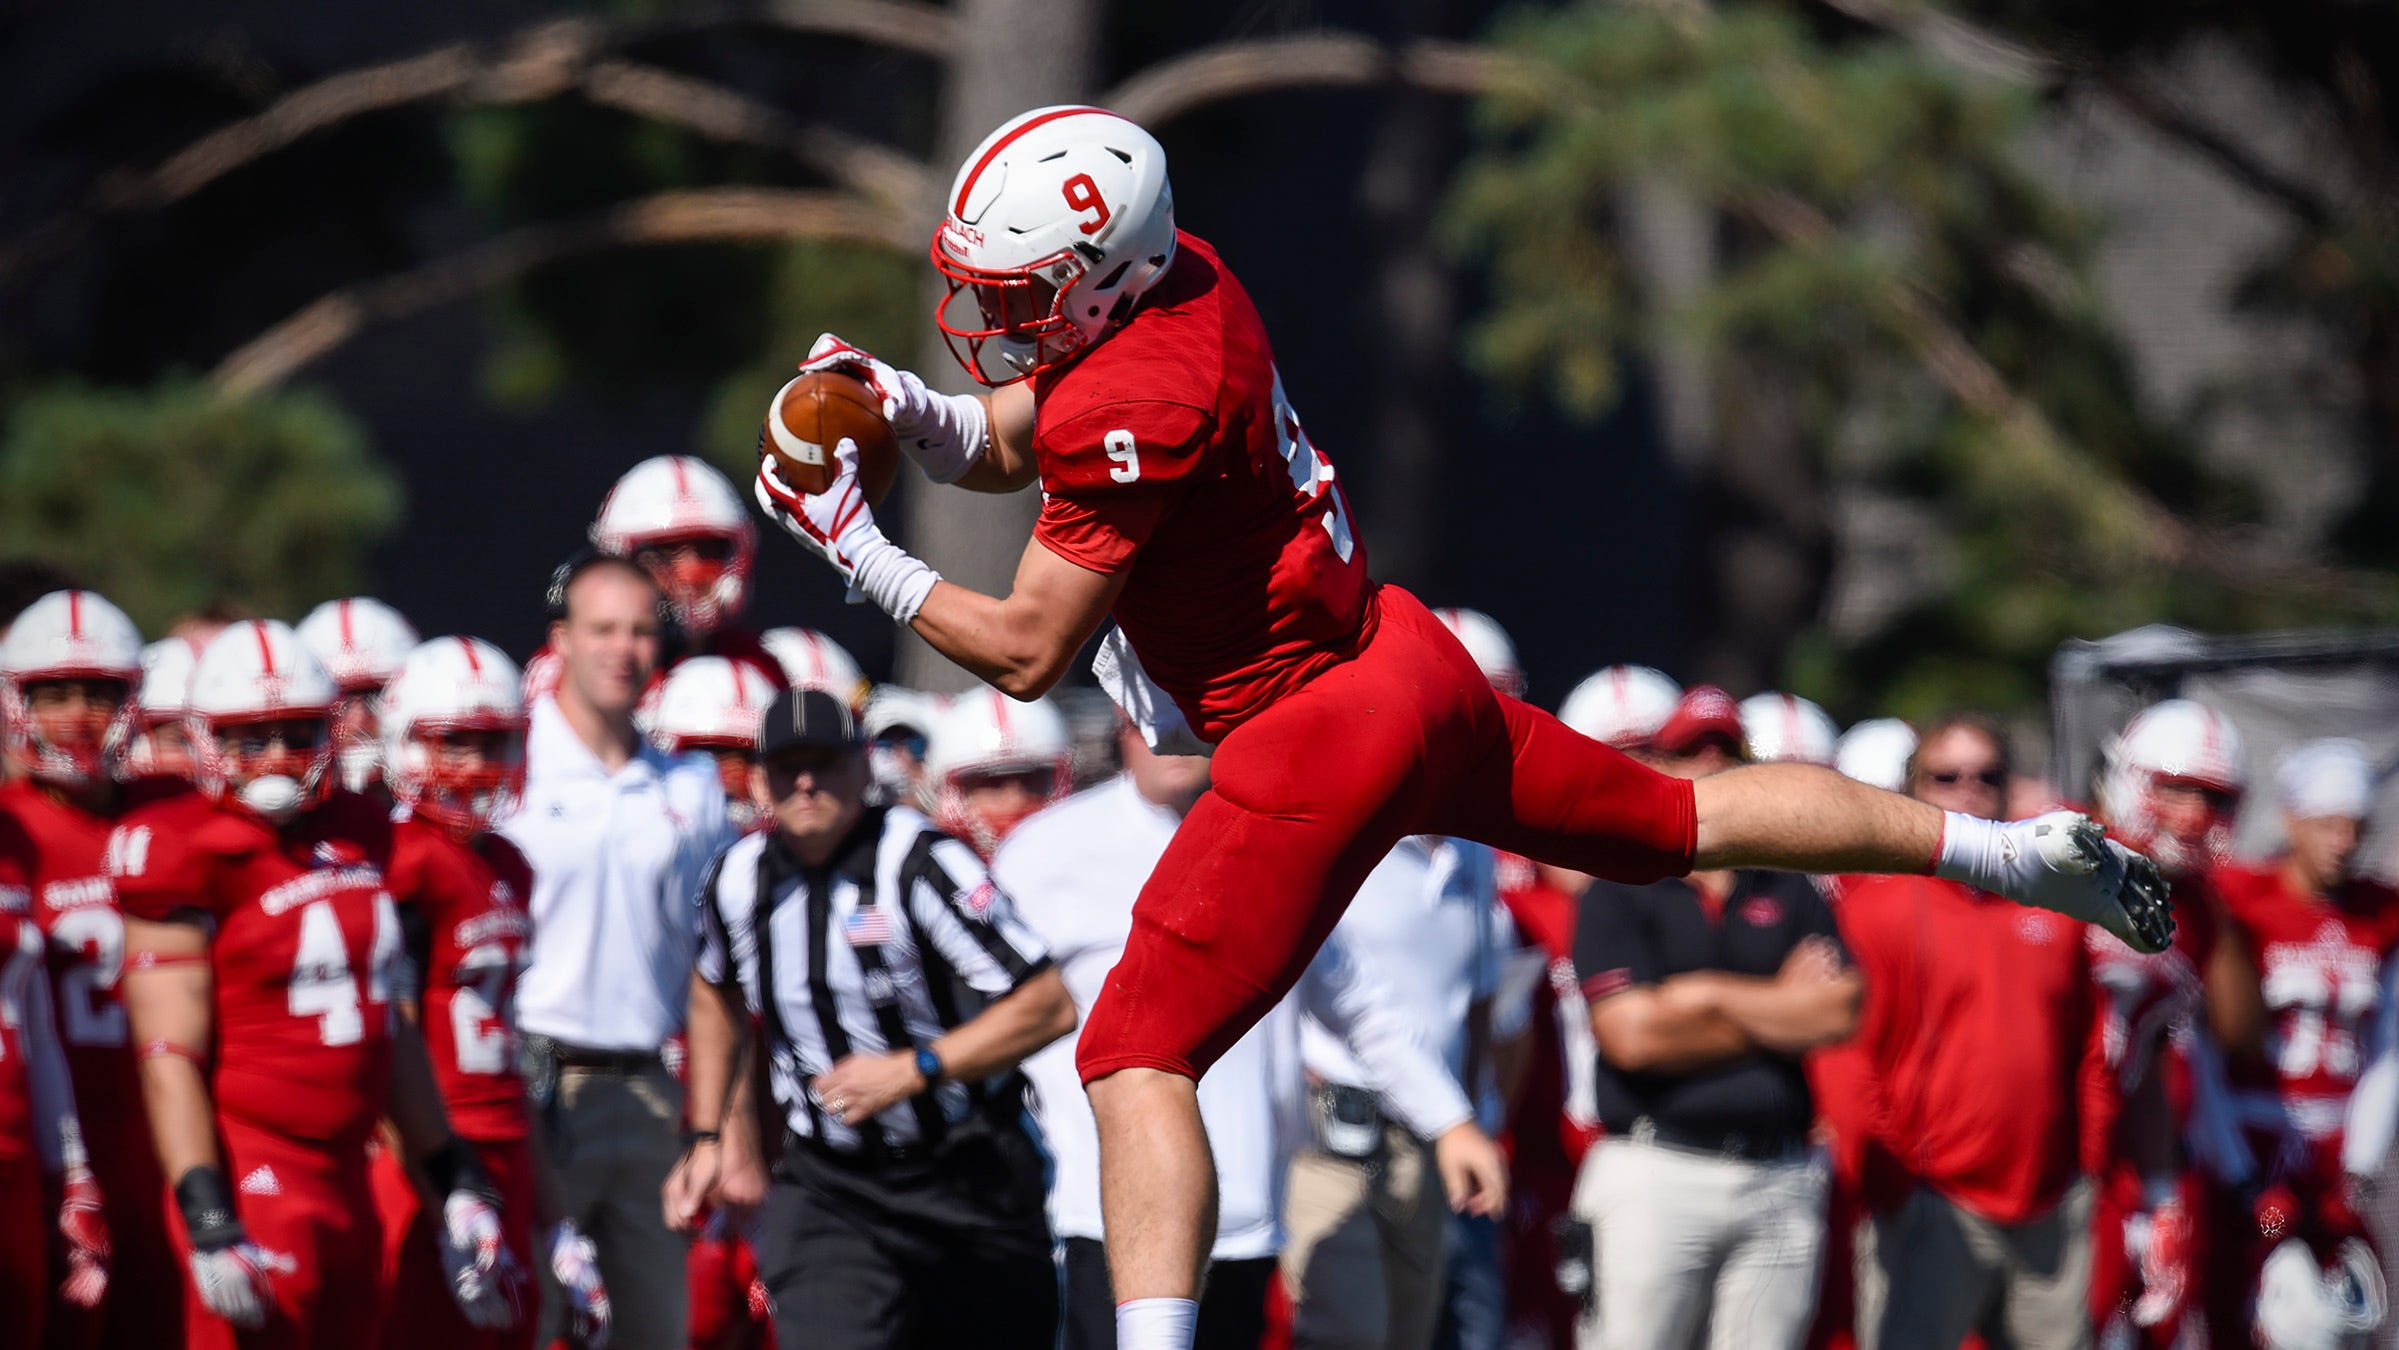 St. John's wide receiver Will Gillach goes high and pulls in a sideline pass for a first down against Carleton in the first half Saturday, Sept. 22, in Collegeville.